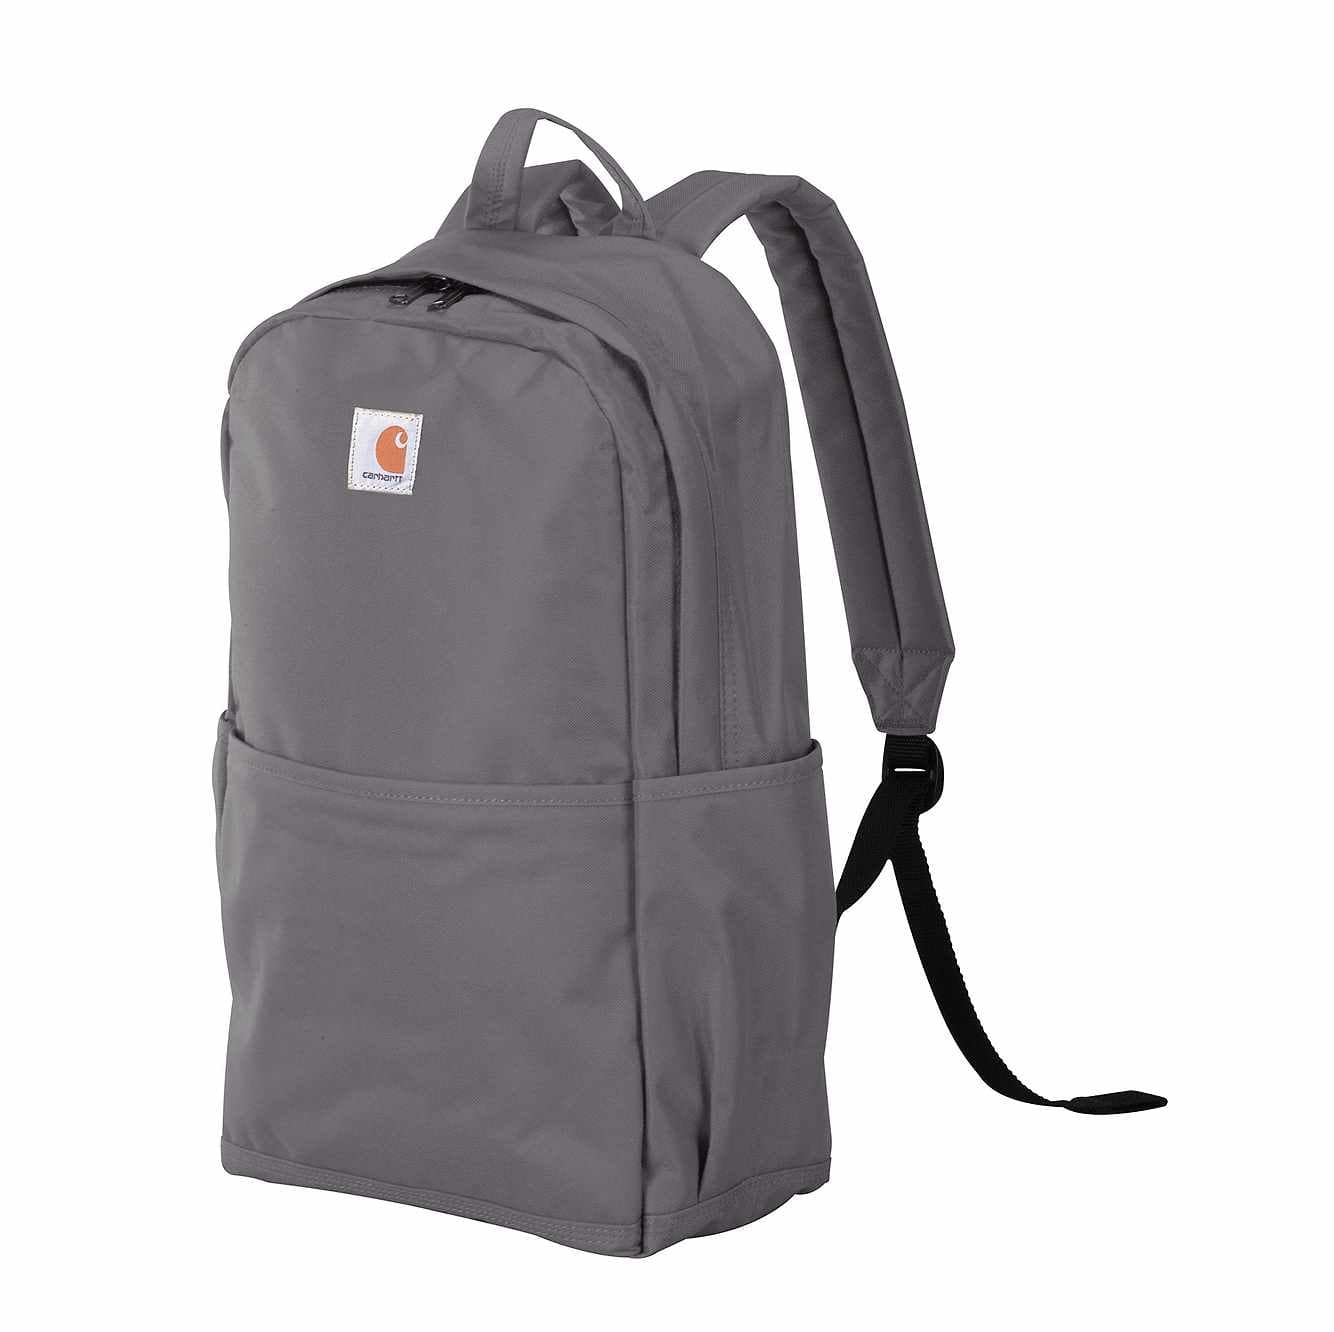 Picture of Trade Plus Backpack in Gray